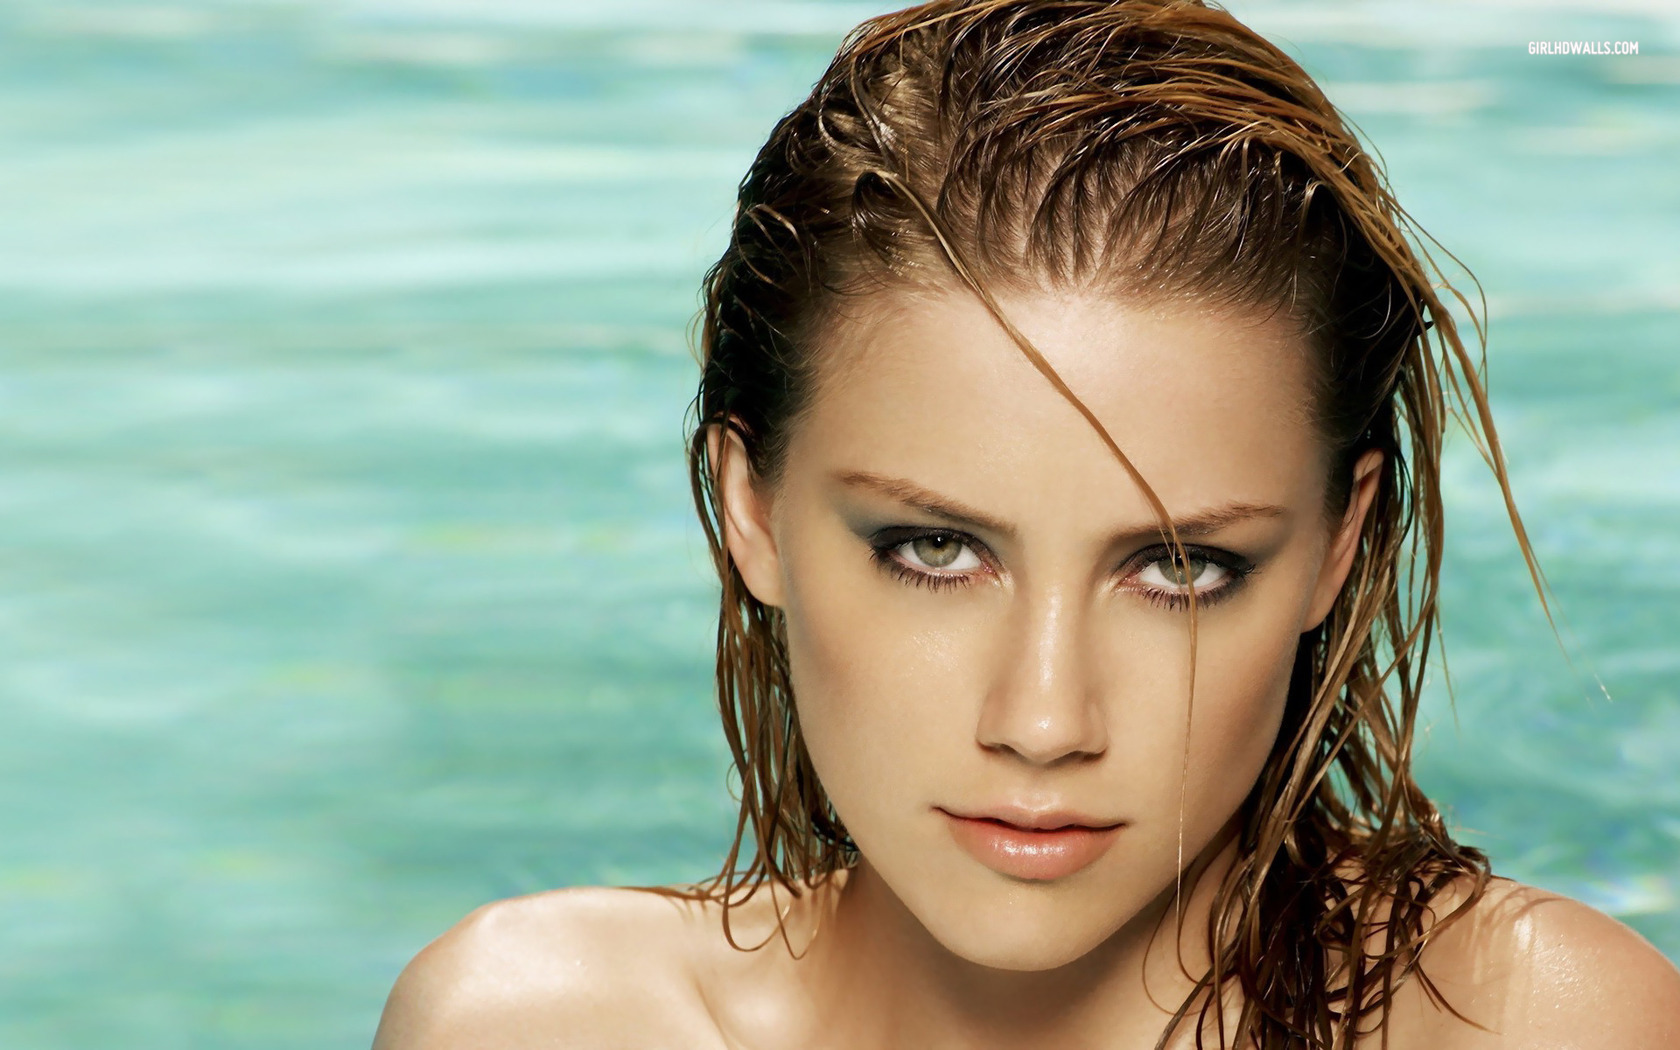 Amber Heard Wallpapers... Amber Heard